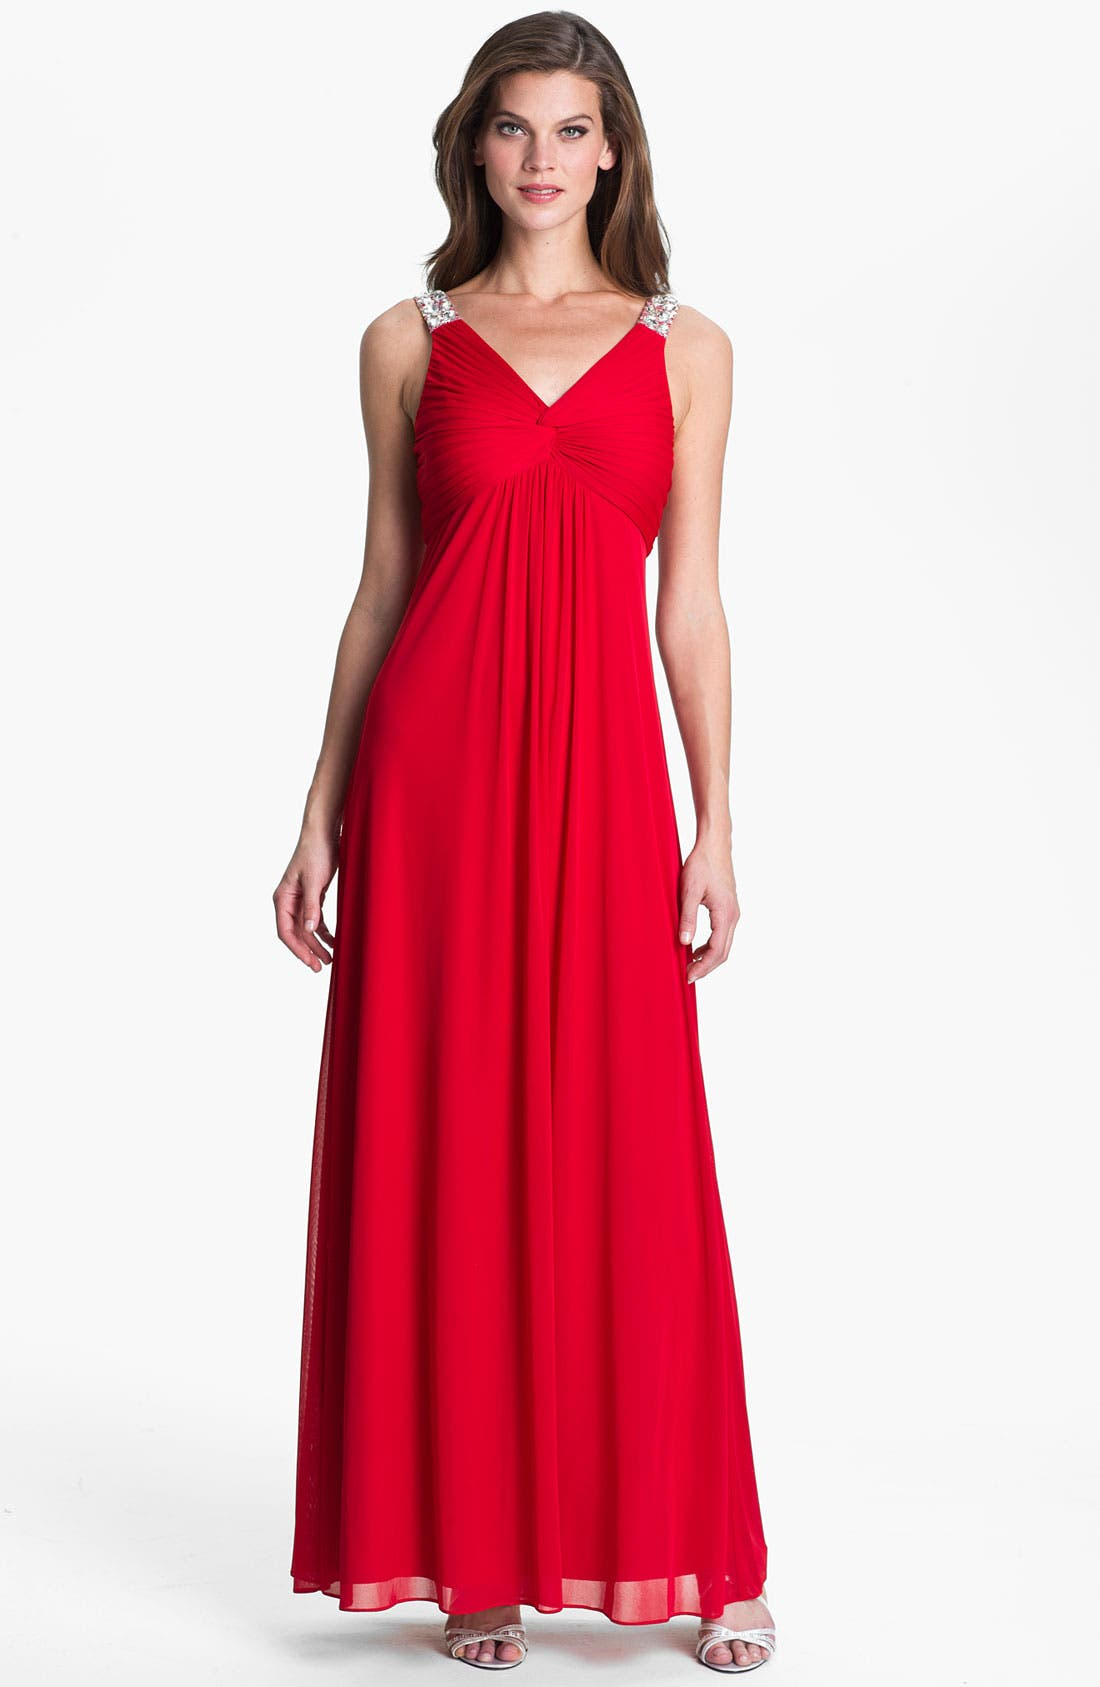 Main Image - Hailey by Adrianna Papell Embellished Strap Knot Front Gown